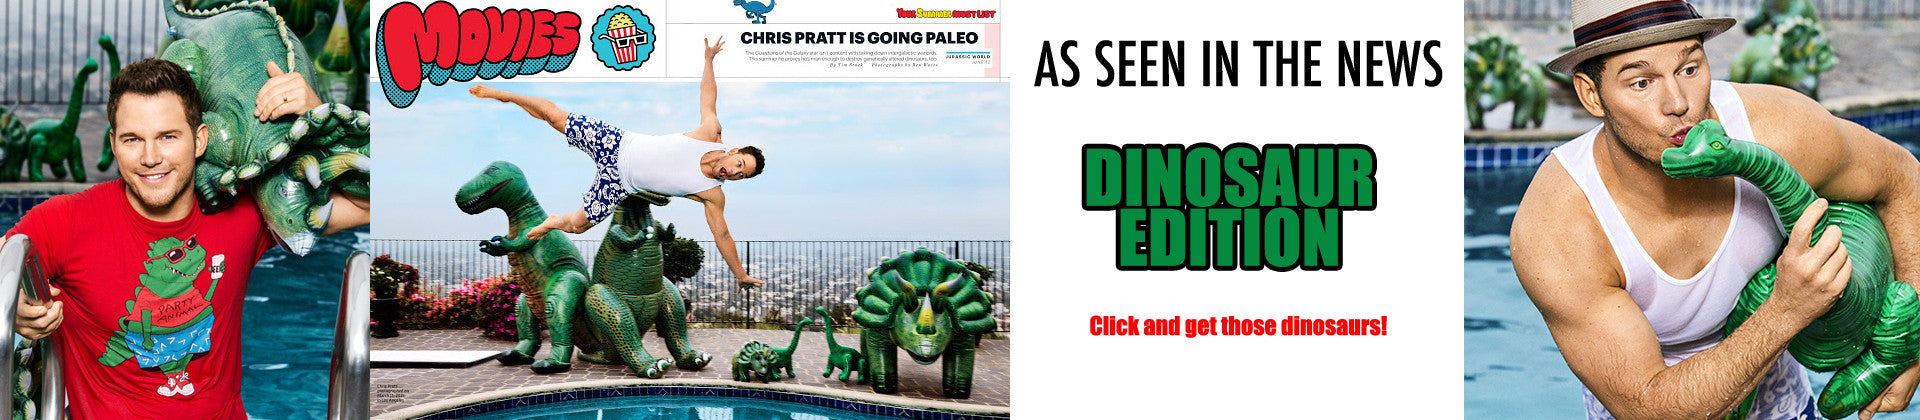 Jet Creations dinosaurs are been seen in the recent Jurassic Park movie inverview on EW! Click and get those dinosaurs in the show!